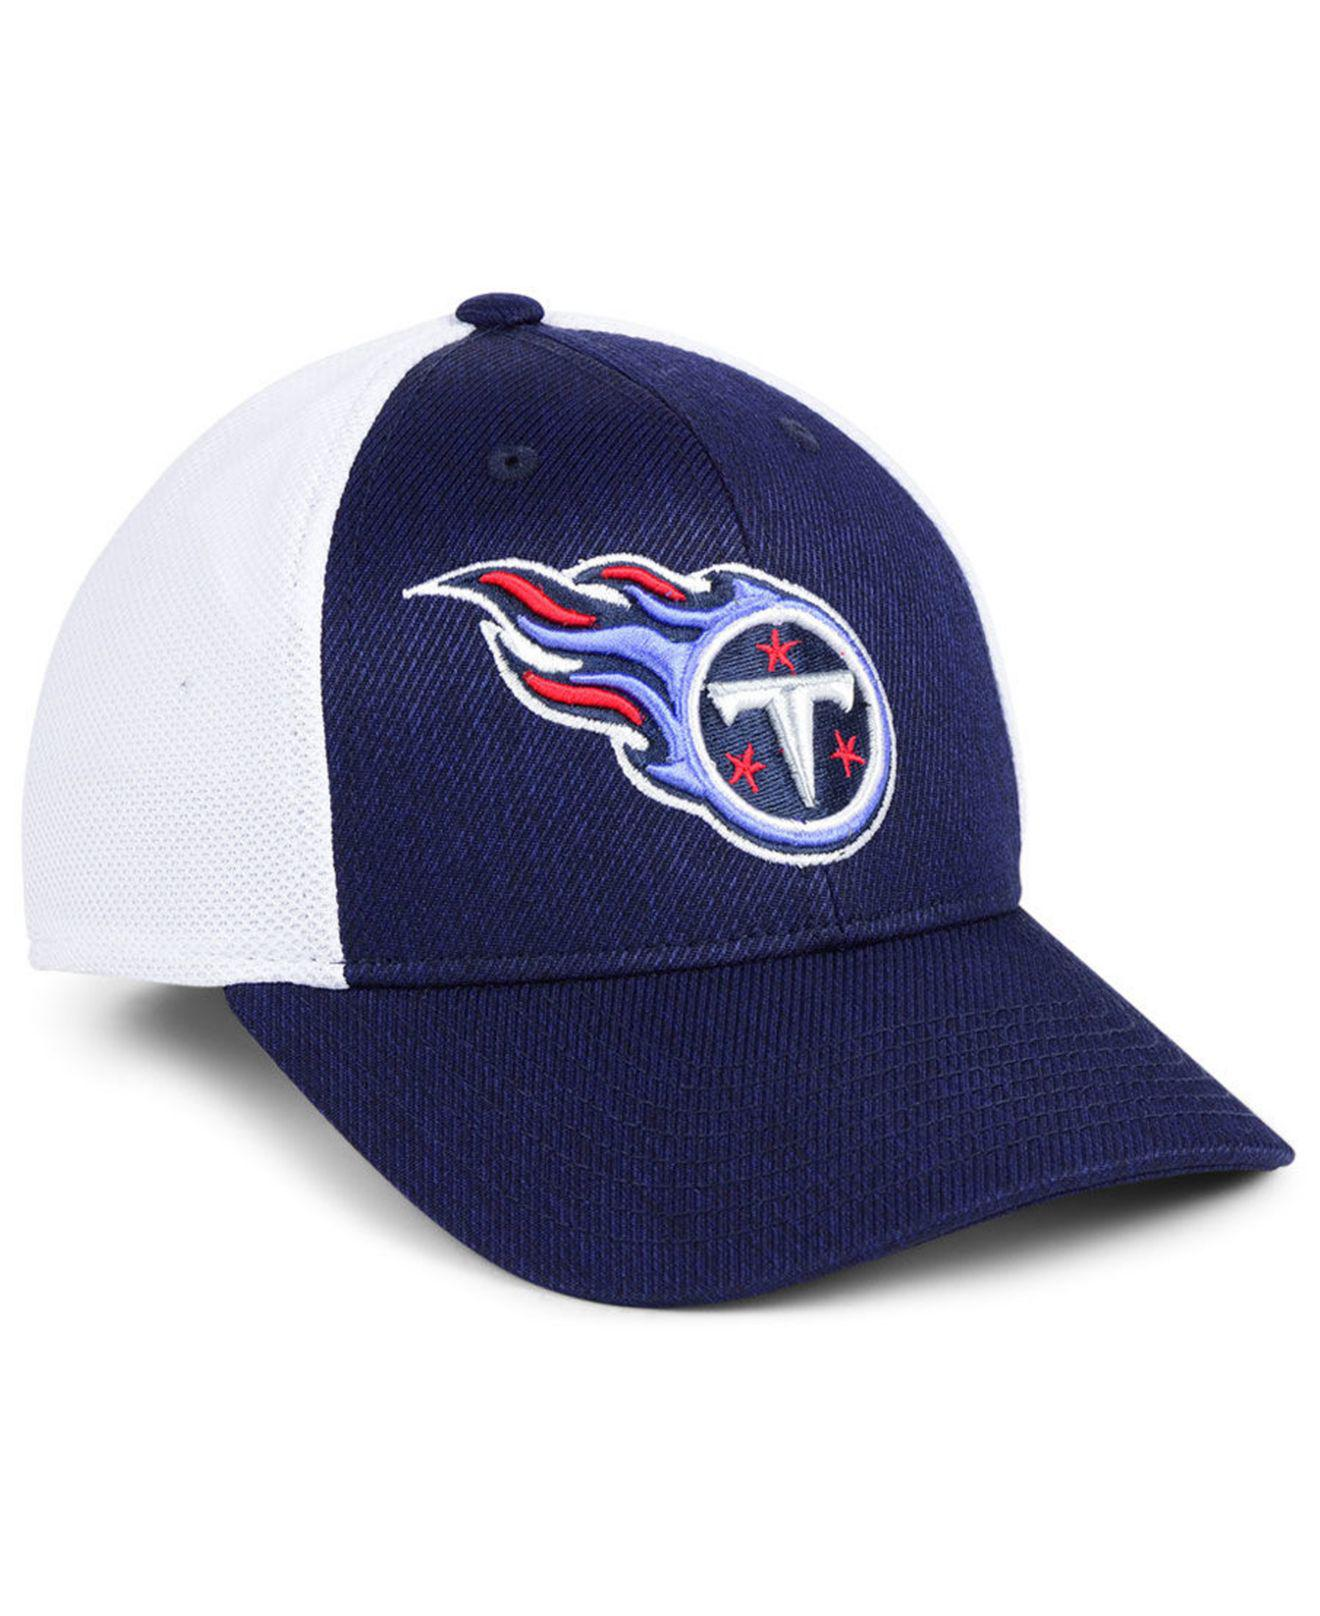 detailing eb730 fa6e1 47 Brand Tennessee Titans Hazy Flex Contender Stretch Fitted Cap in ...